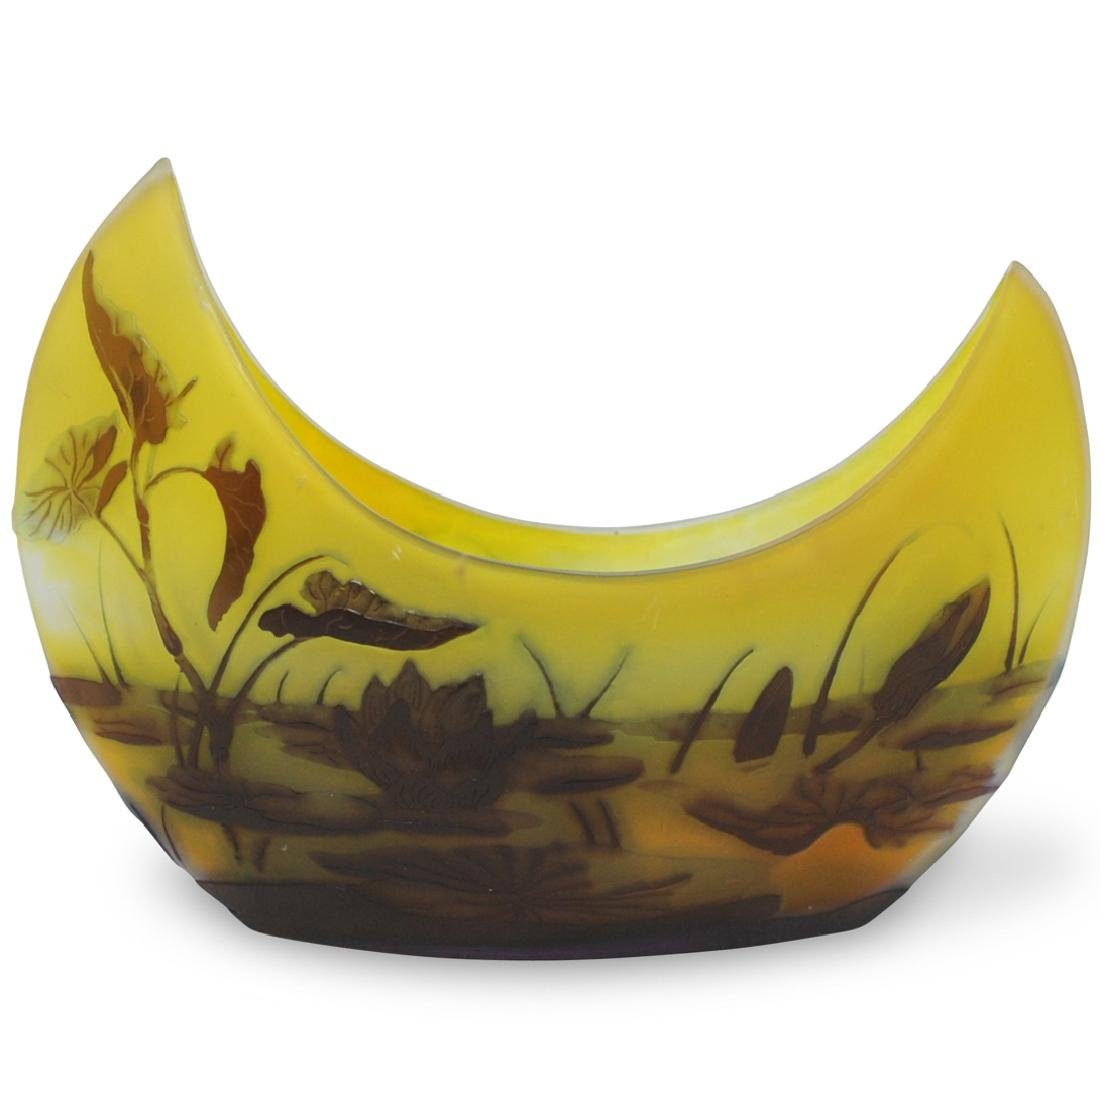 Emile Galle (French, 1846-1904) Cameo Glass Boat Vase